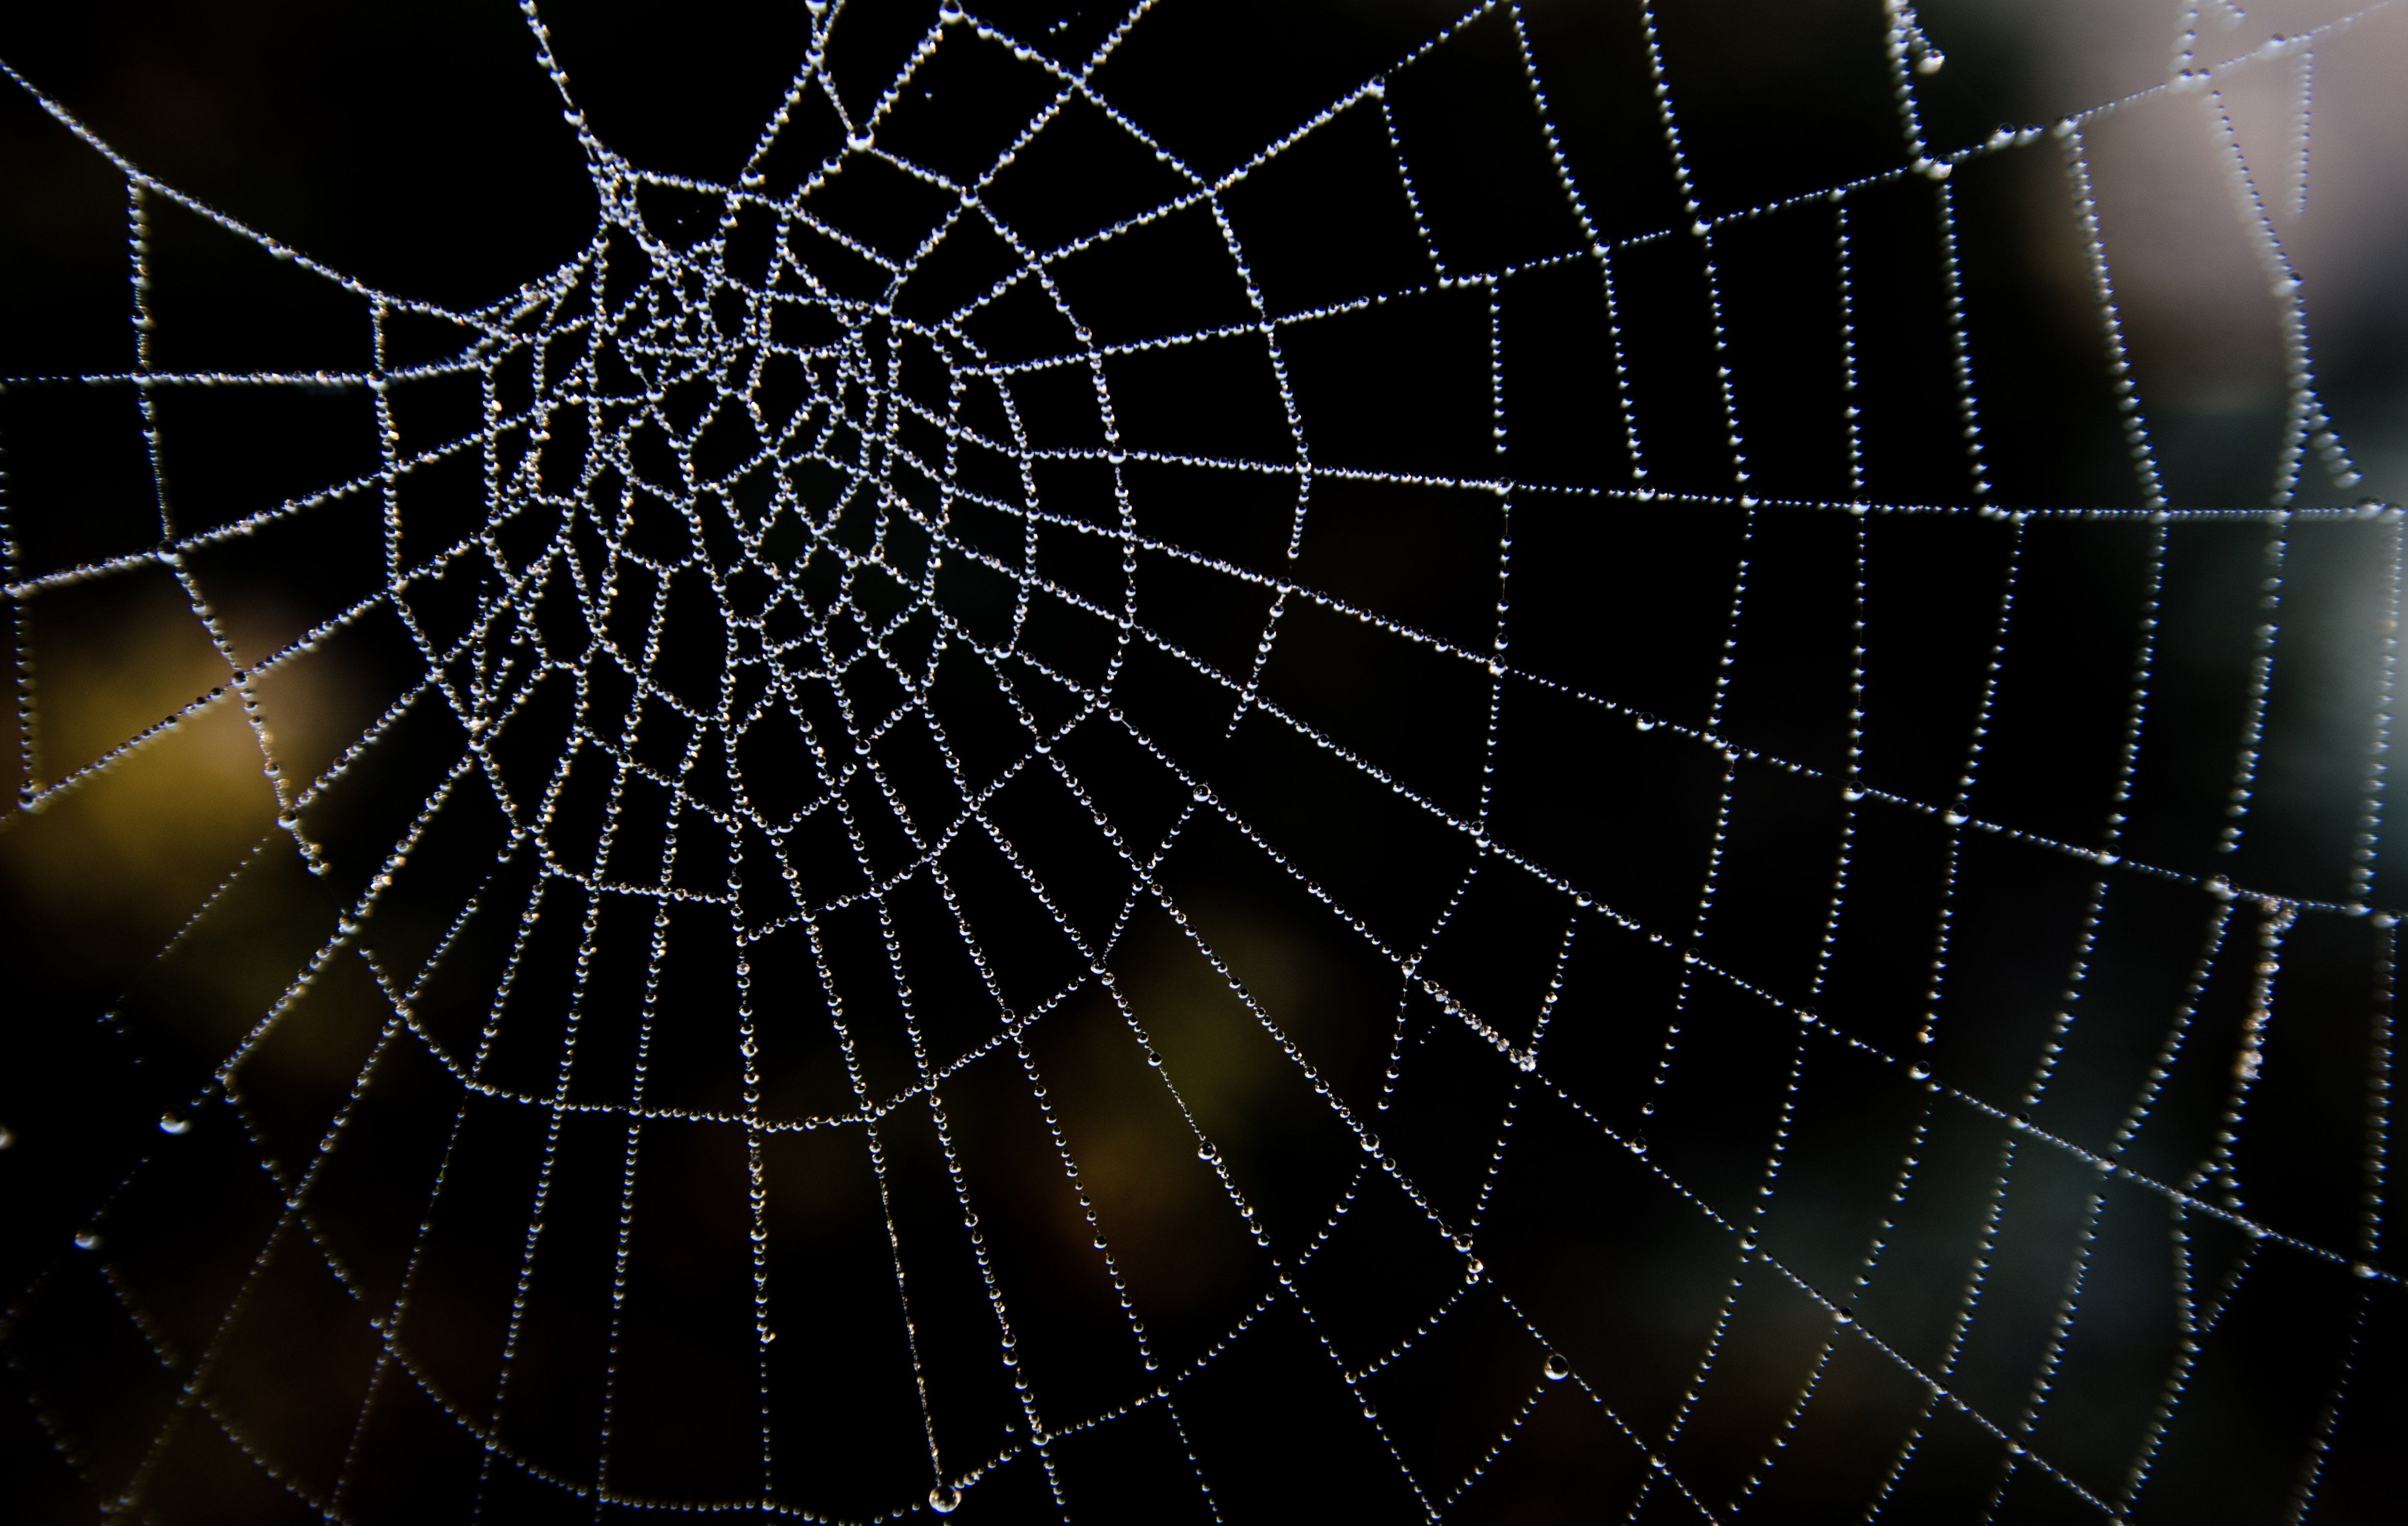 [ Images] Backgrounds Water Drop Spider Web ID 4918x3117